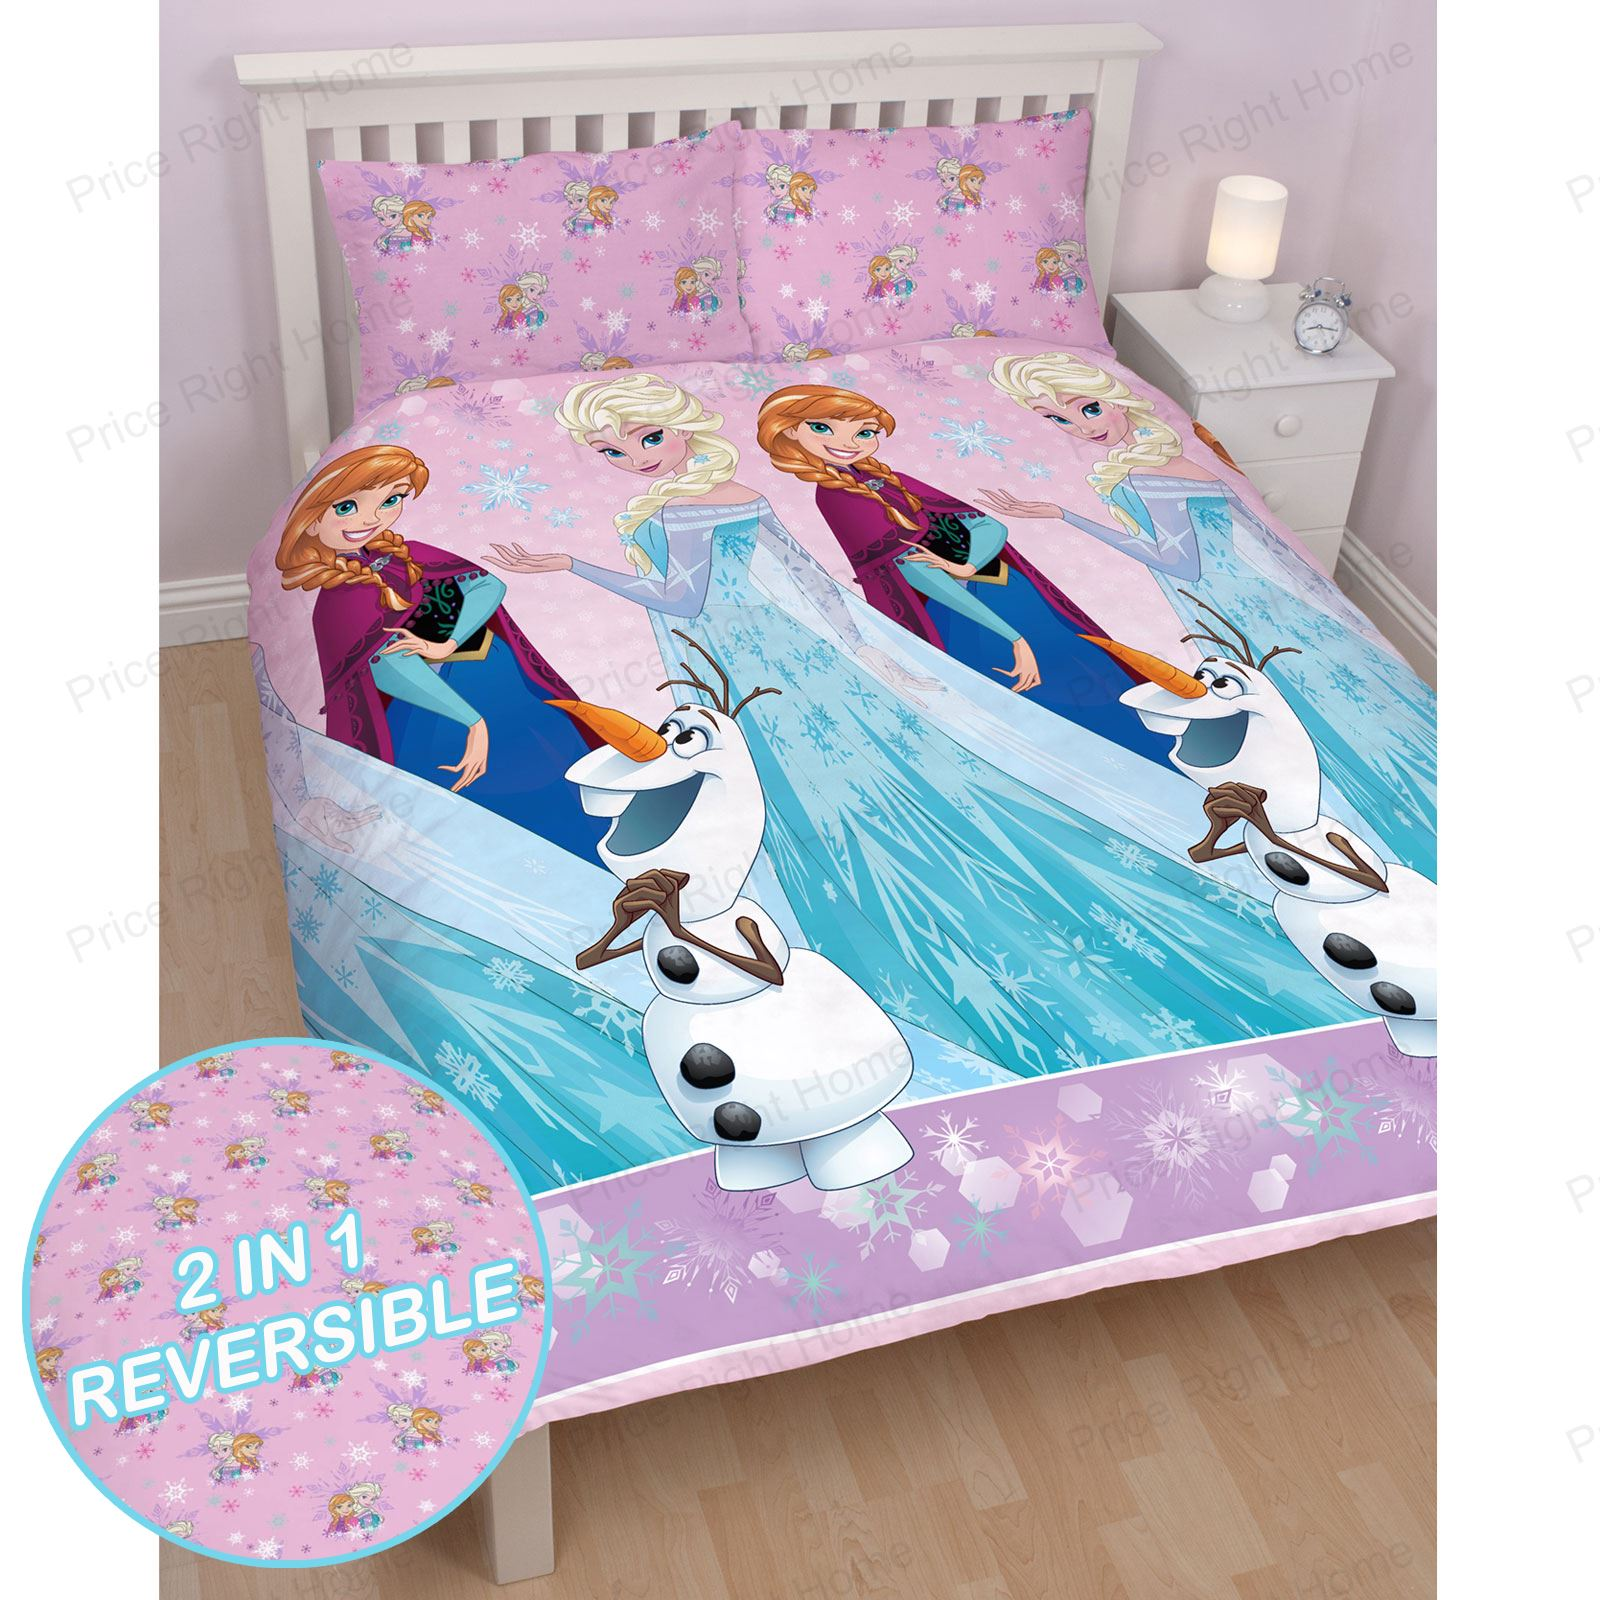 S Double Rotary Reversible Duvet Sets Princess One Direction Peppa Pig More